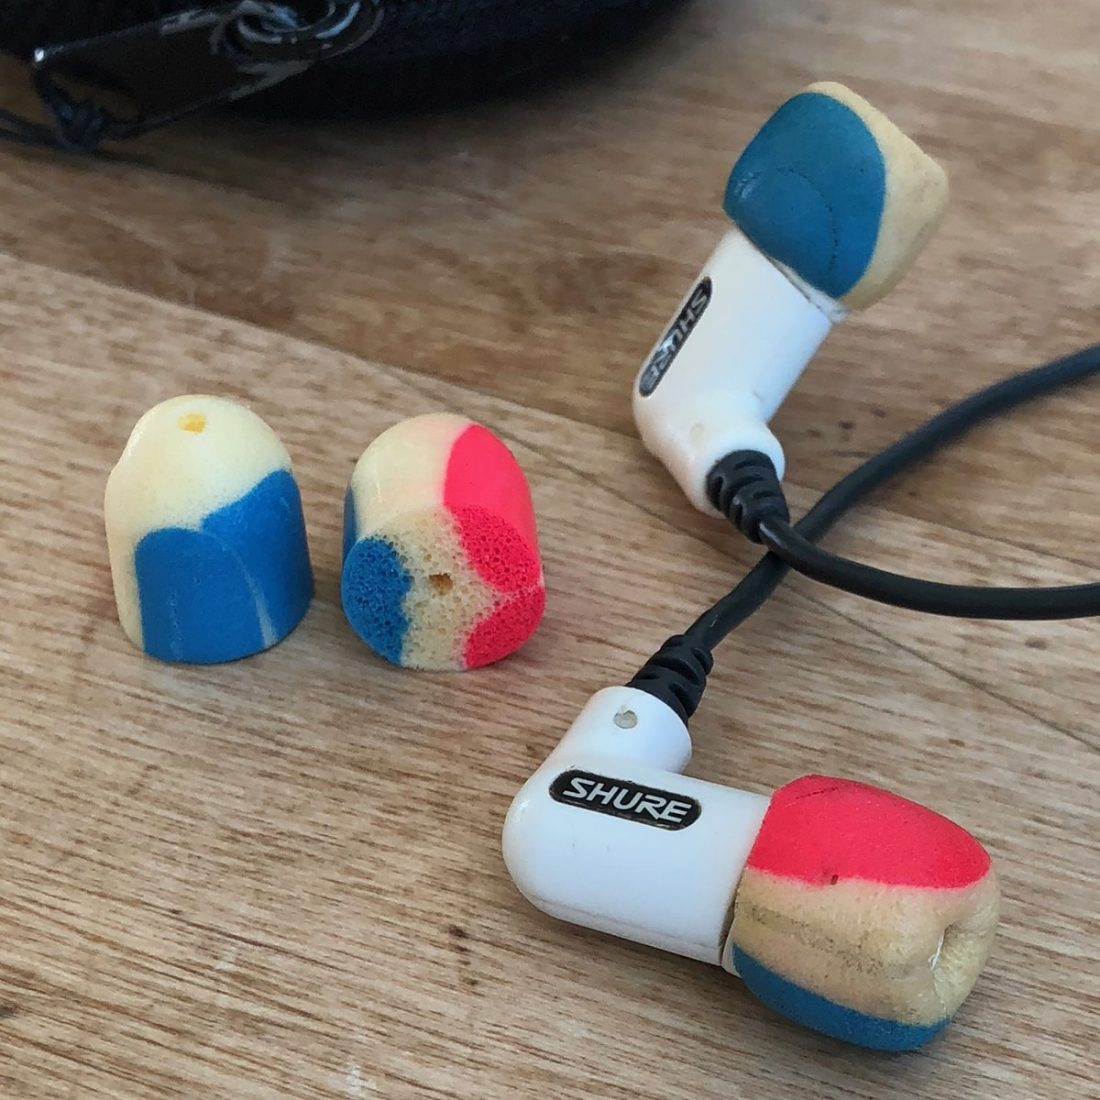 My much loved and used Shure IEMs with DIY ear tips